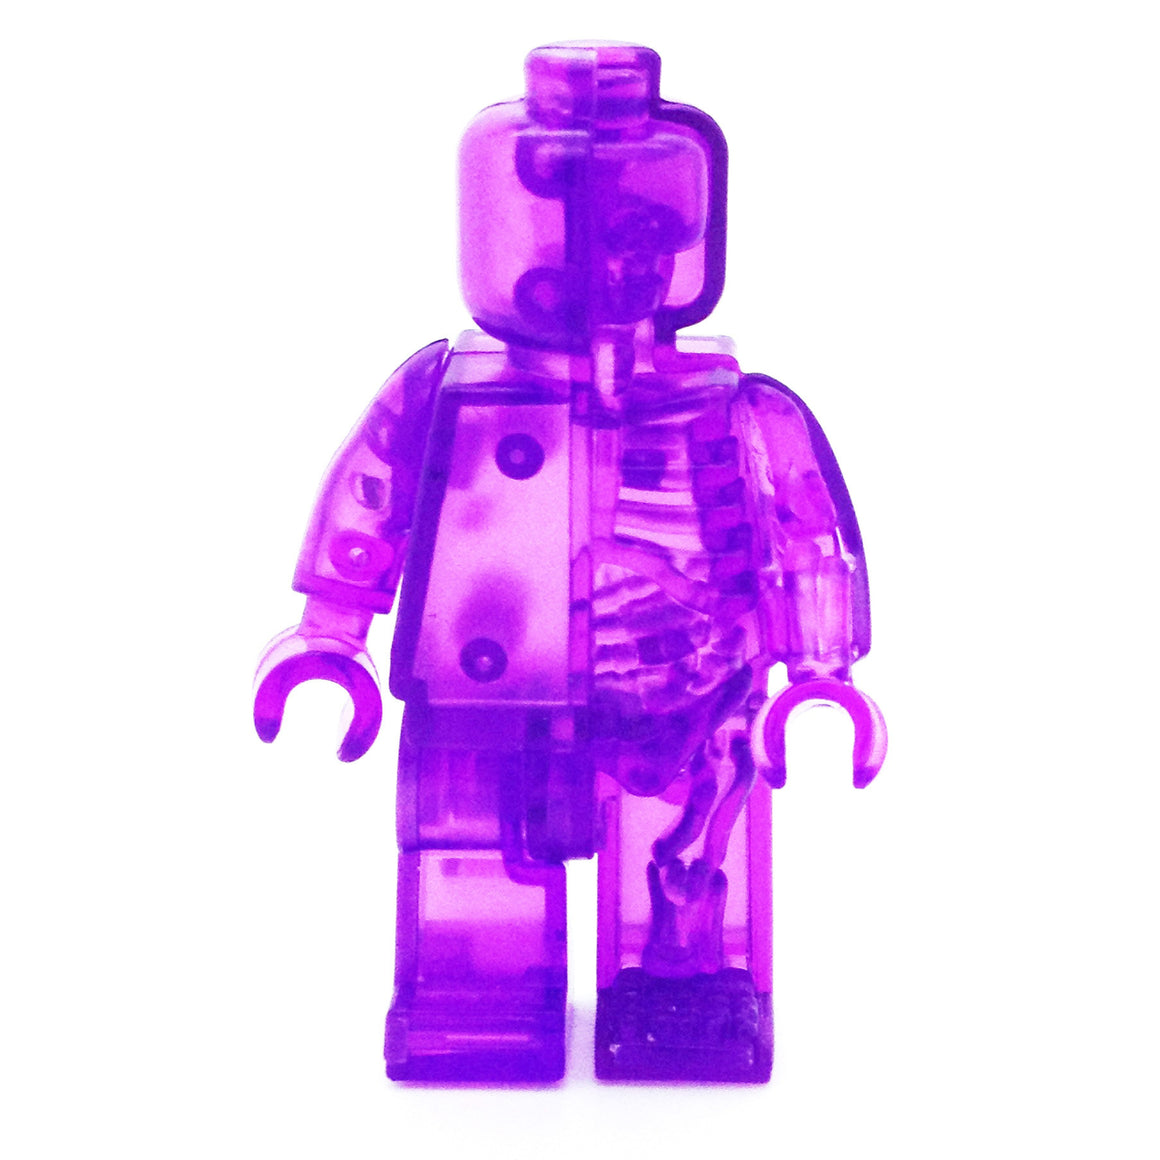 Rainbow Micro Anatomic by Jason Freeny x Mighty Jaxx - Purple - Mindzai